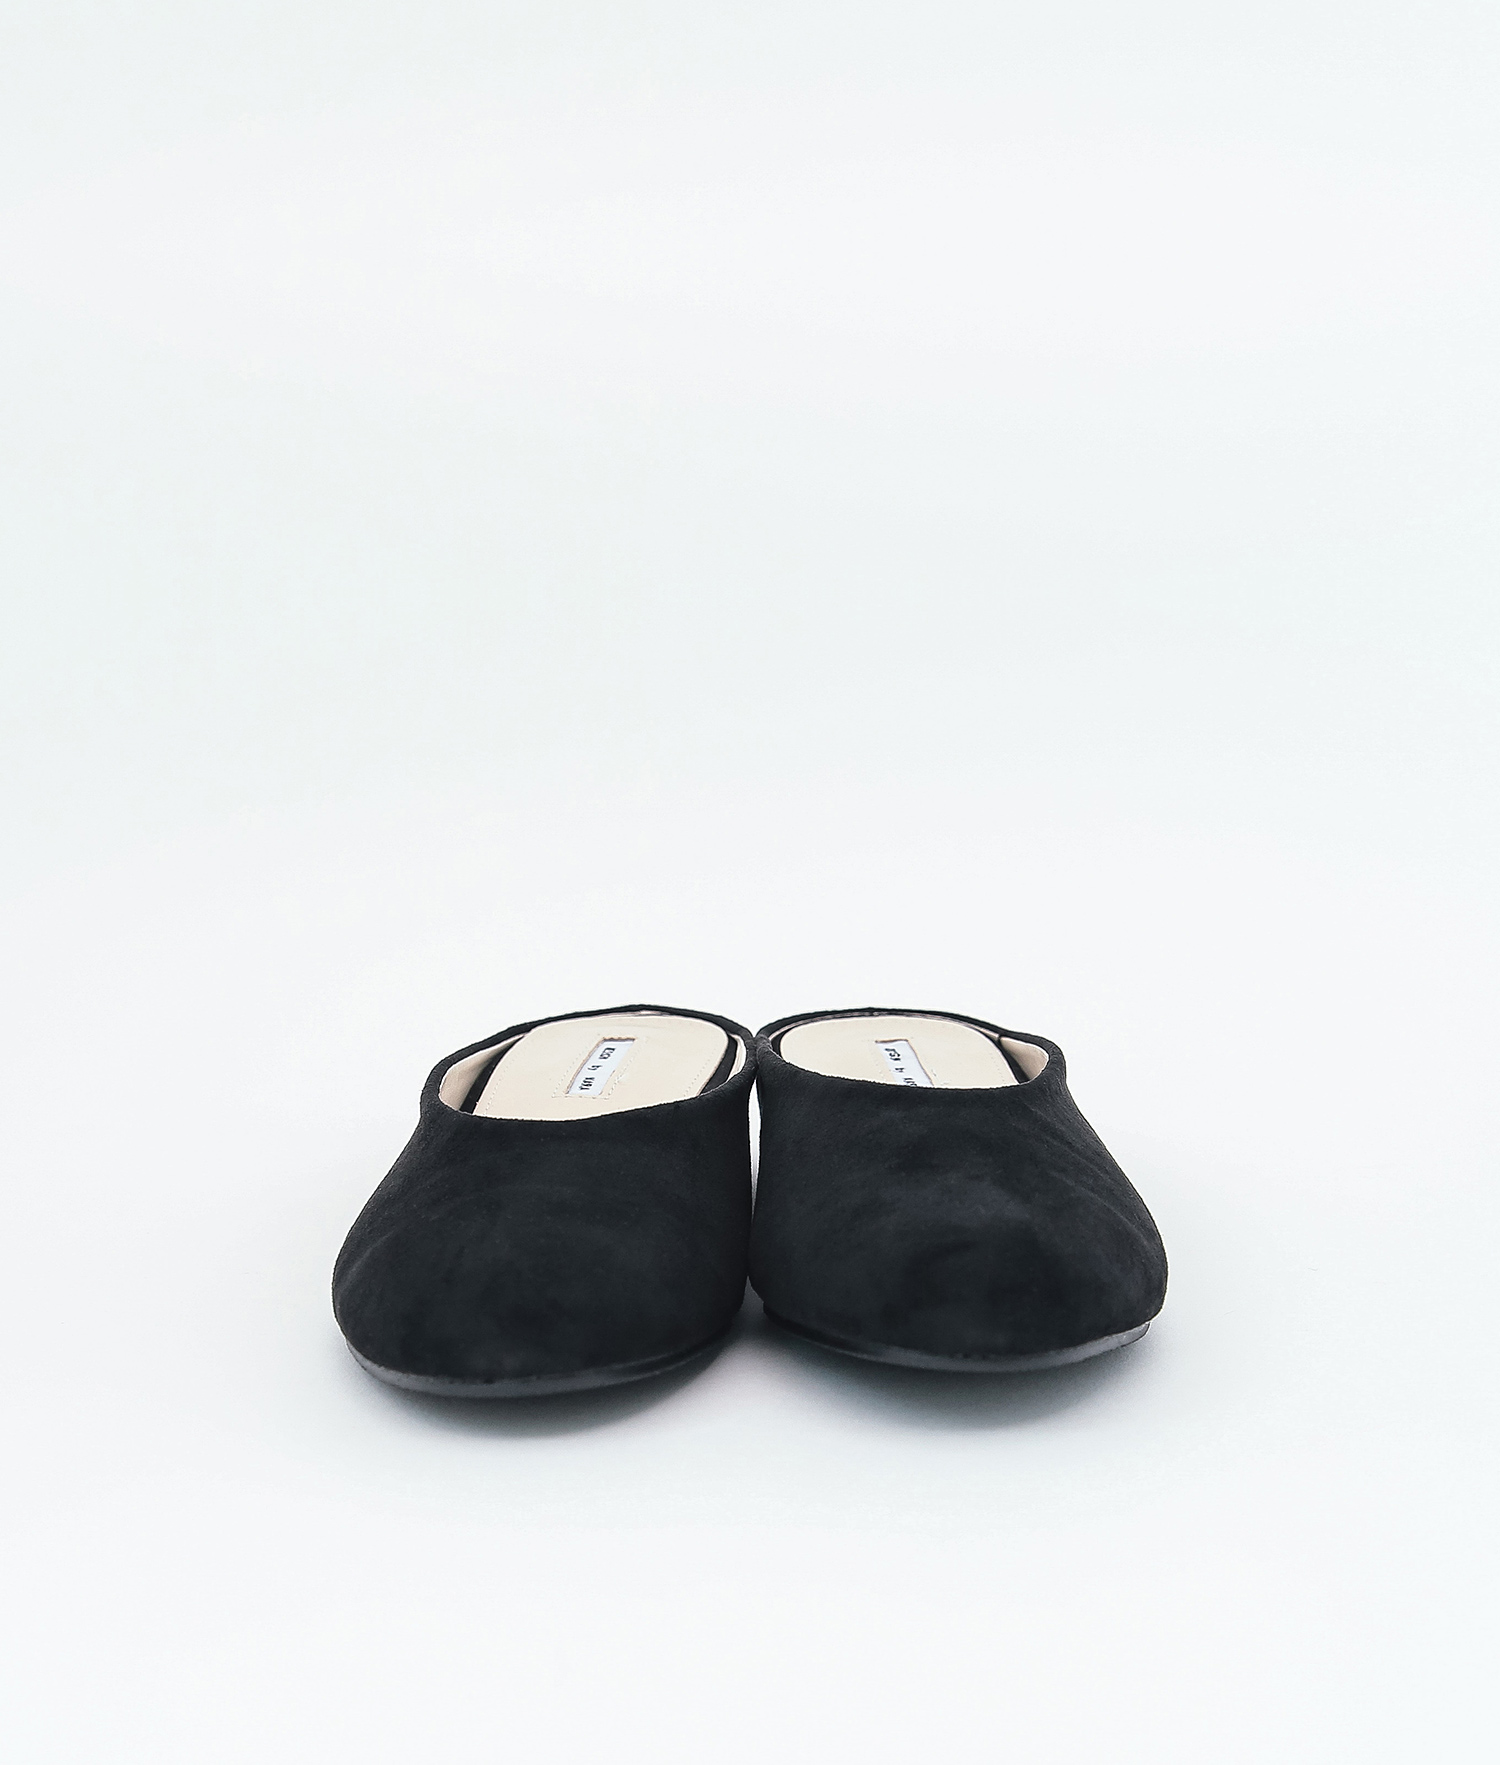 e943767ec838 AnnaKastle Womens Faux Suede Mule Slides Black